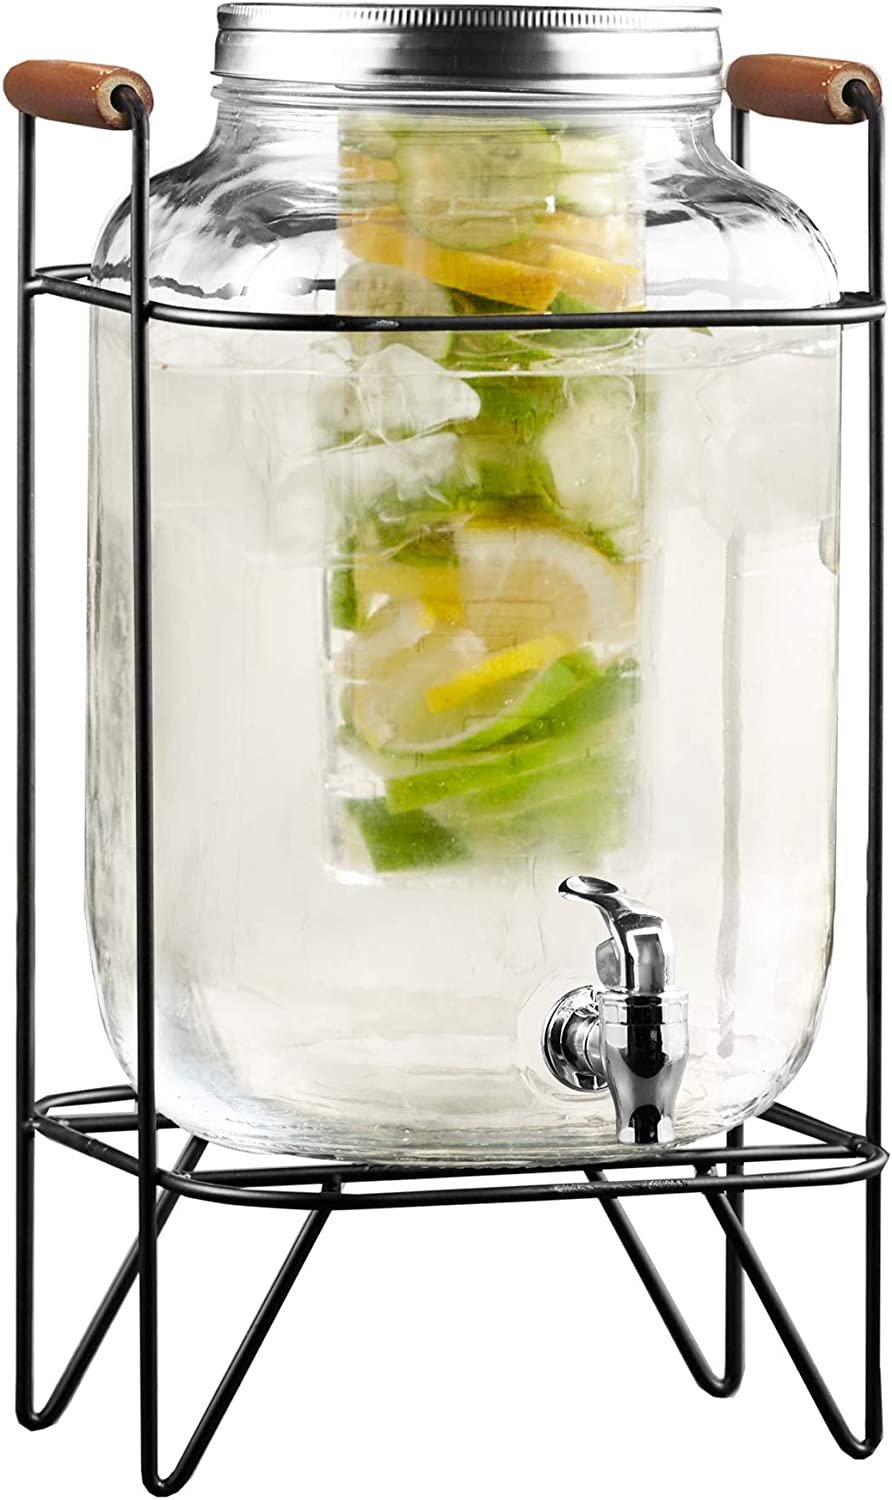 Style Setter Beverage Dispenser Cold Drink Dispenser w/ 2-Gallon Capacity Glass Jug, Metal Stand & Leak-Proof Acrylic Spigot, Metal Lid, Great for Parties, Weddings & More